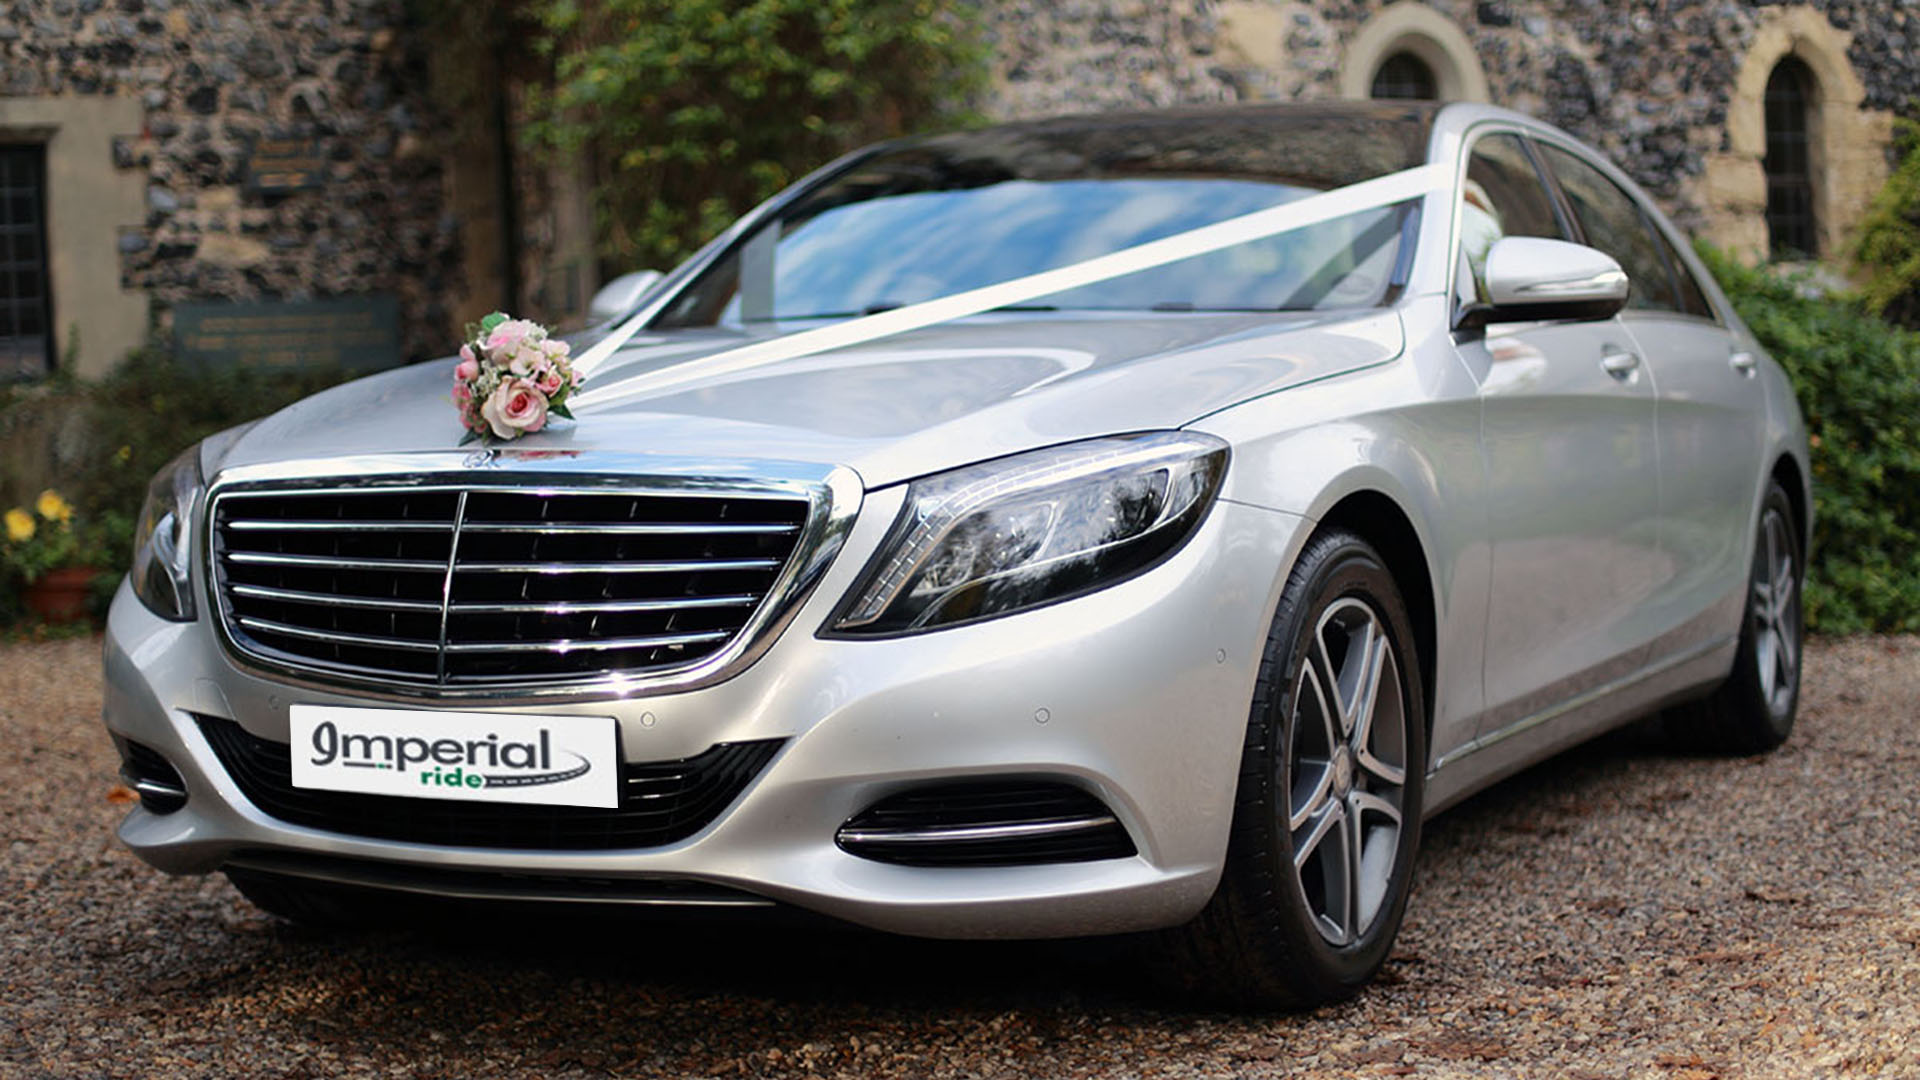 s-class-wedding-hire-in-kingston-upon-thames